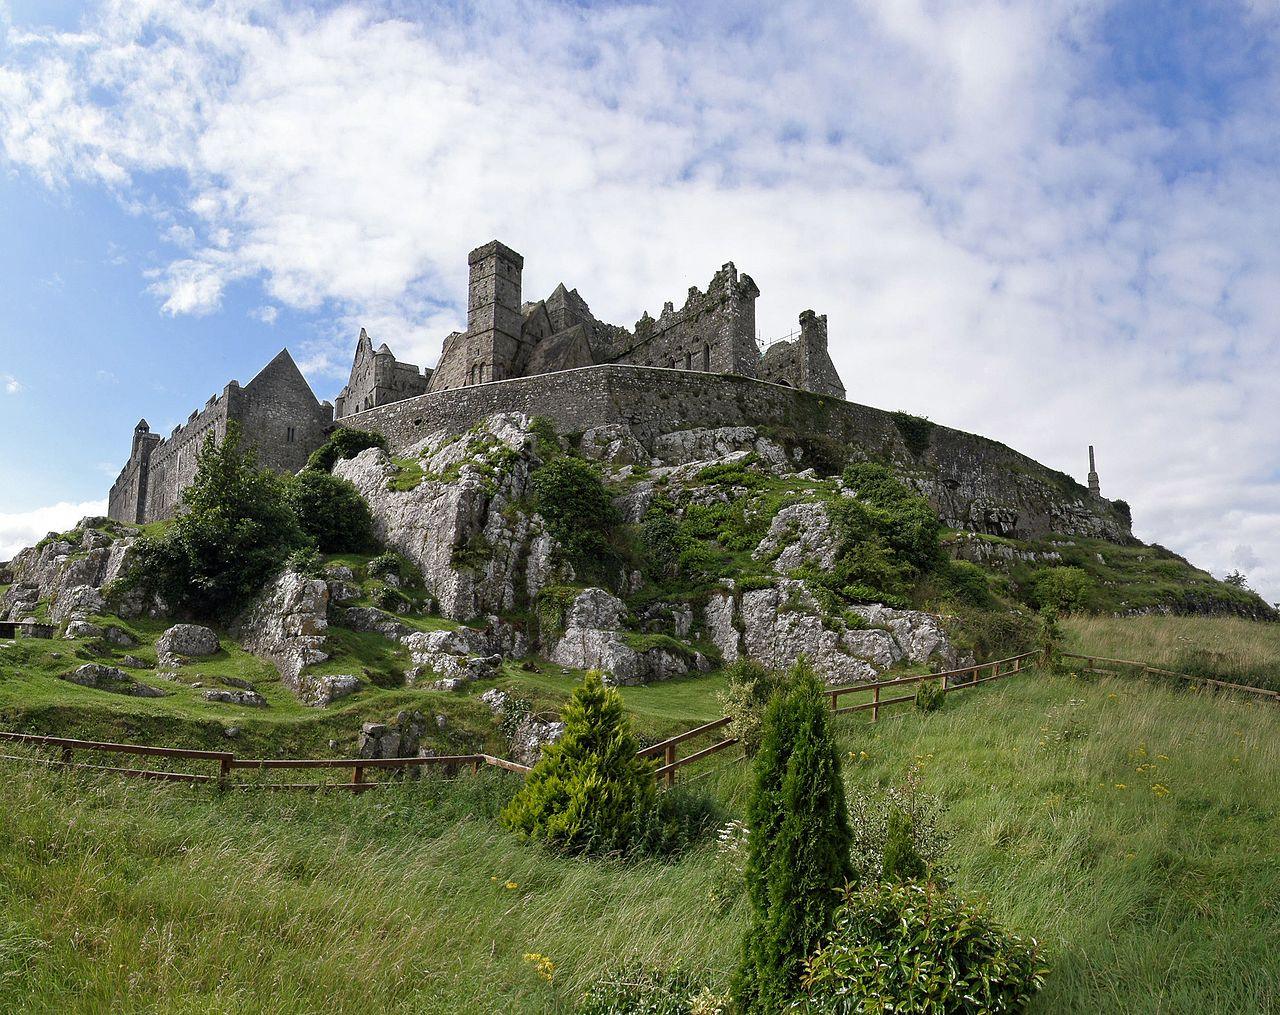 The impressive Rock of Cashel is a cool place to visit in Ireland